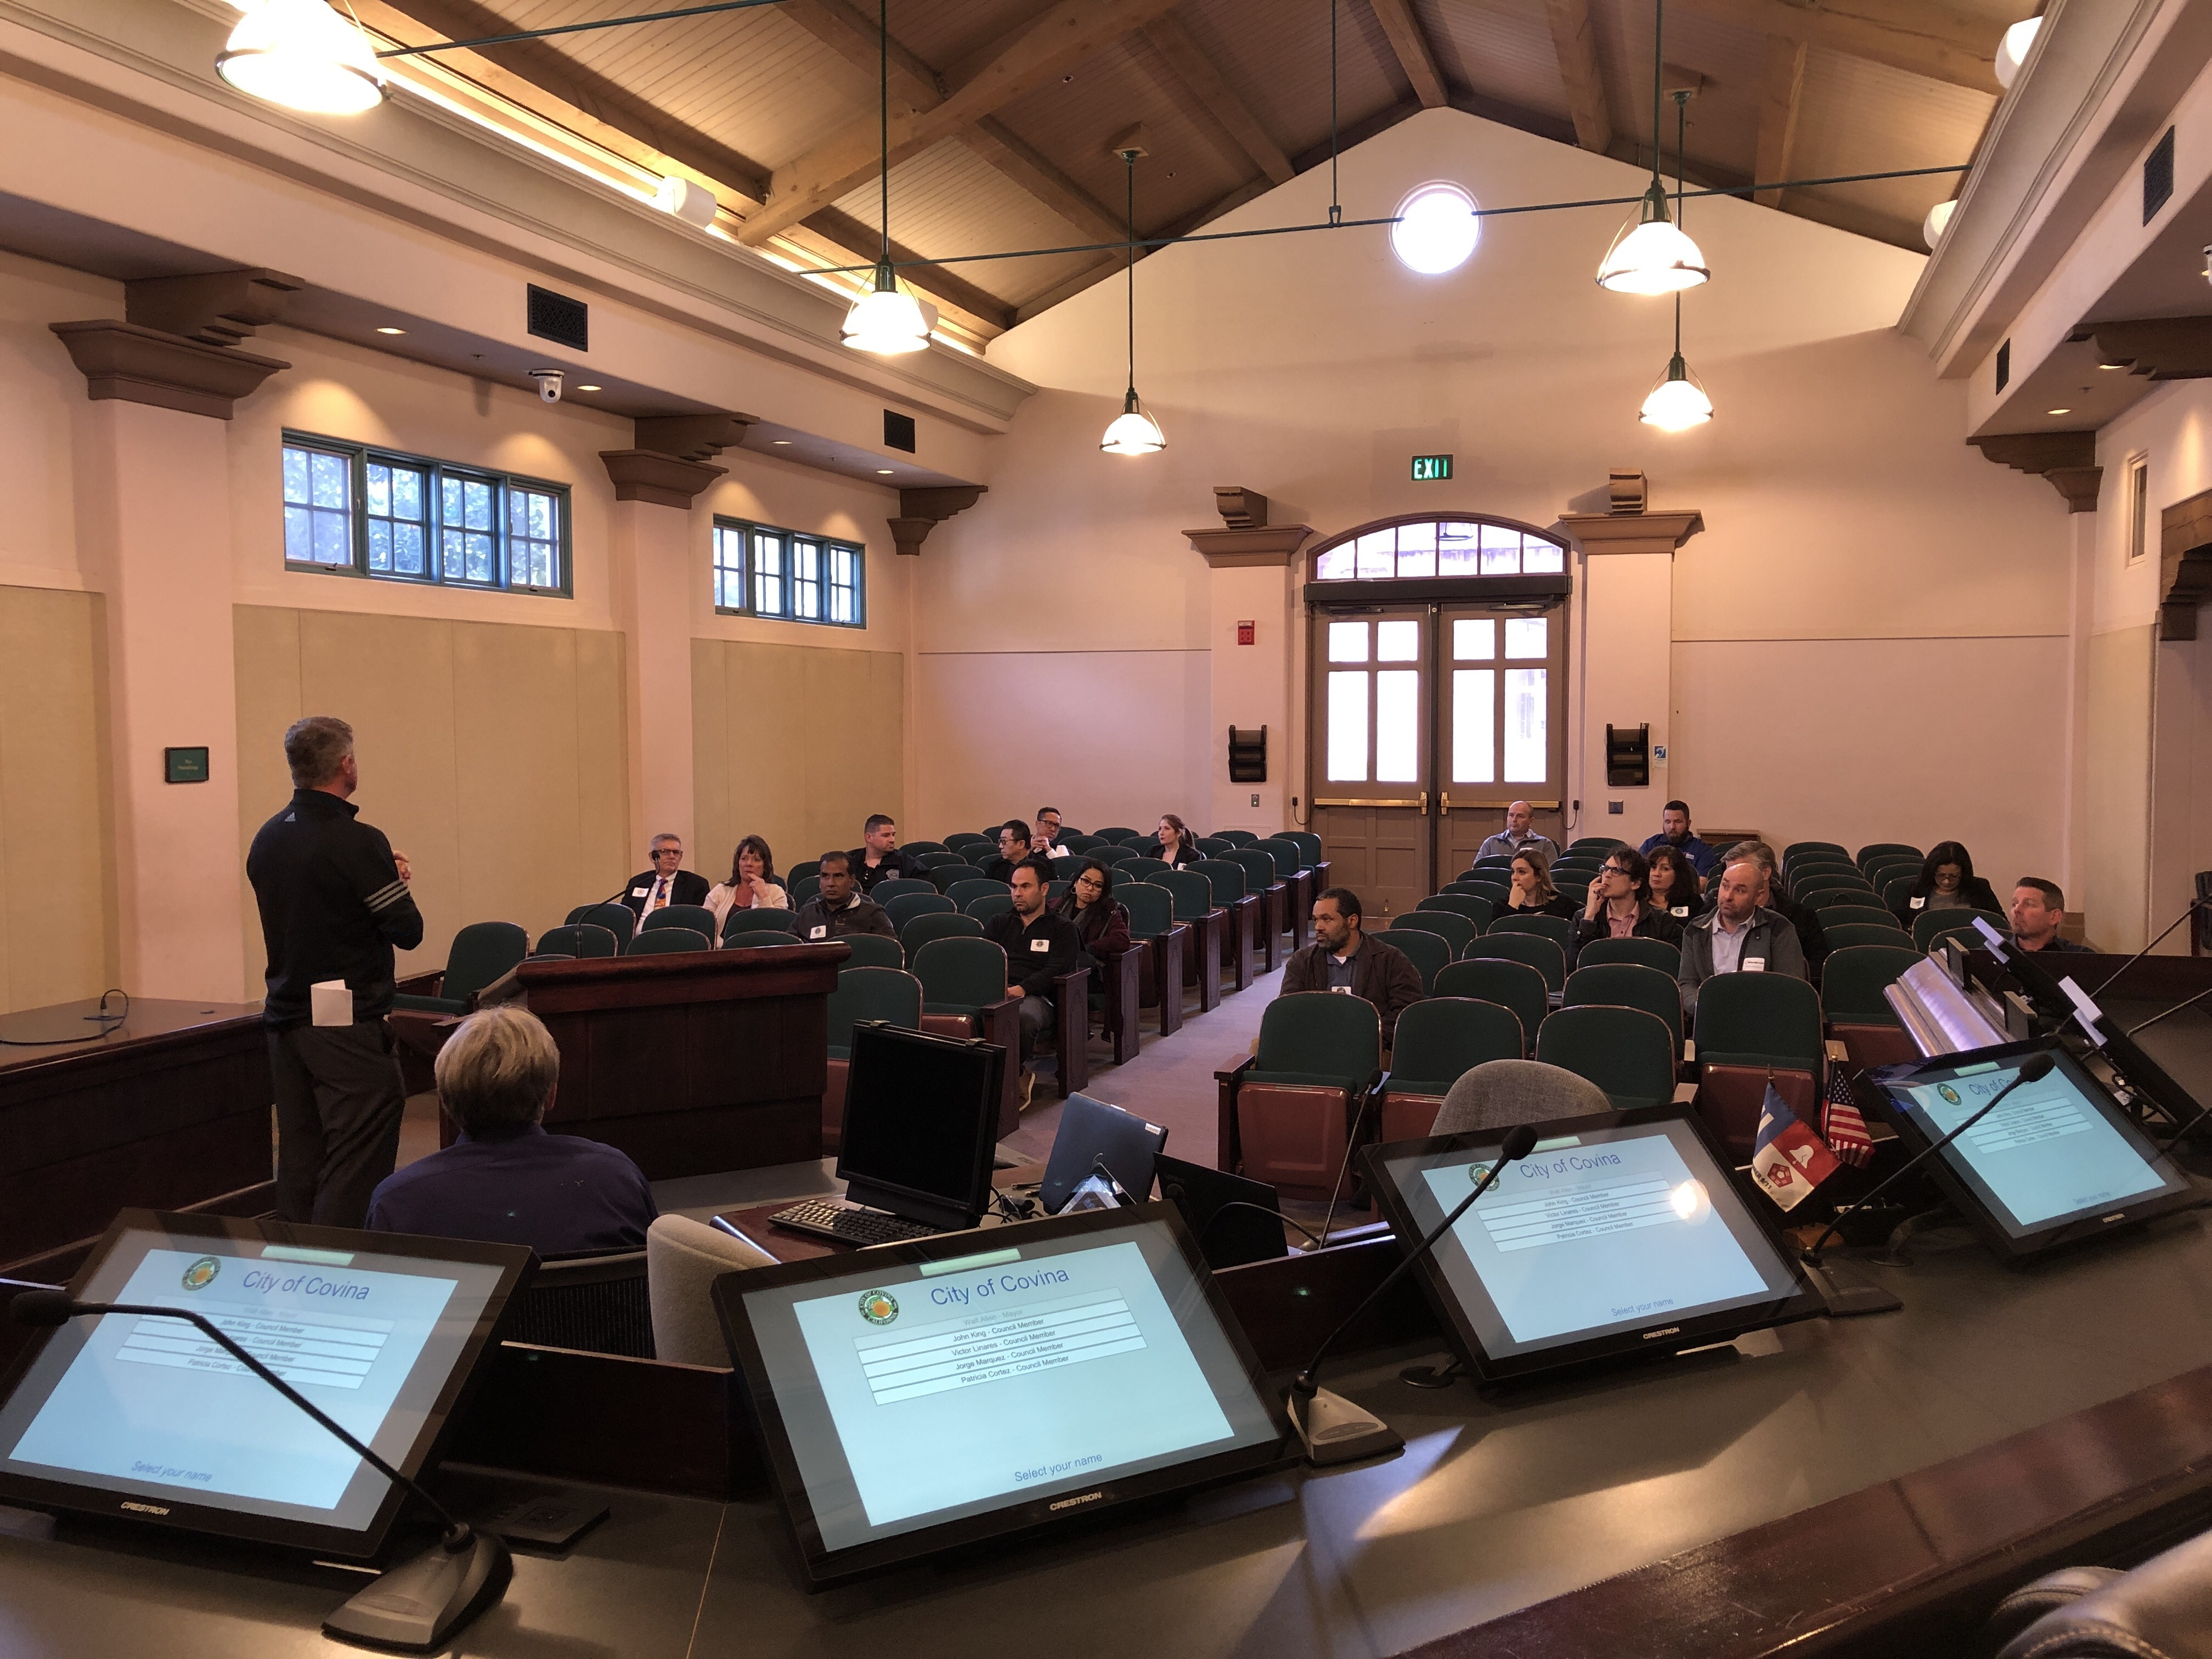 Western Audio Visual Technology Showcase Tour: City of Covina Council Chamber